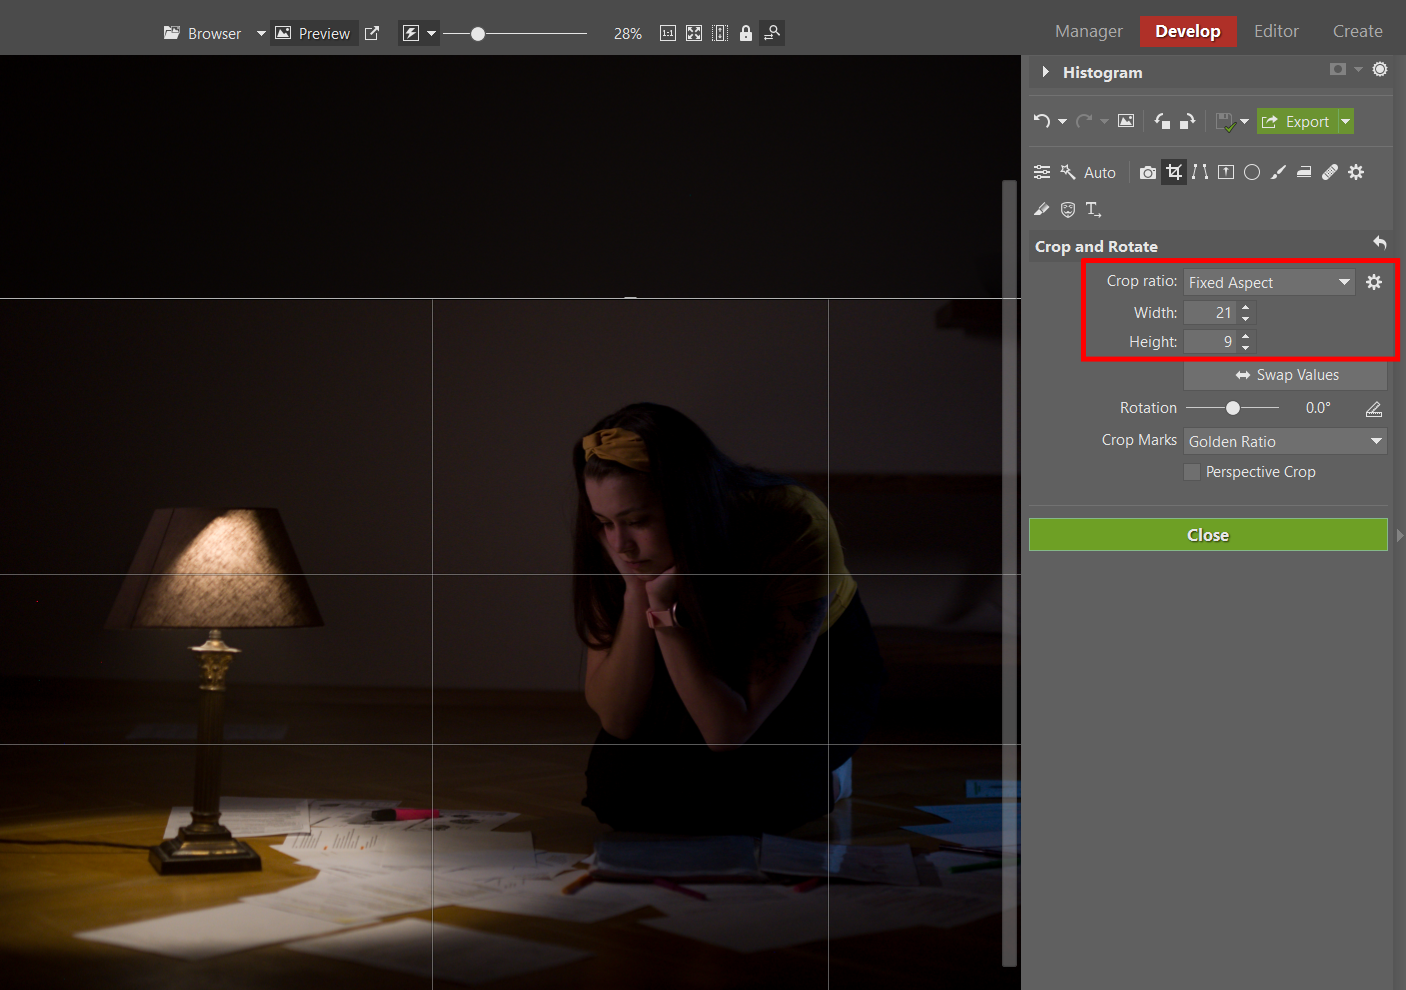 ZPS X Editing School III: Make Cinematic Edits to Your Photos